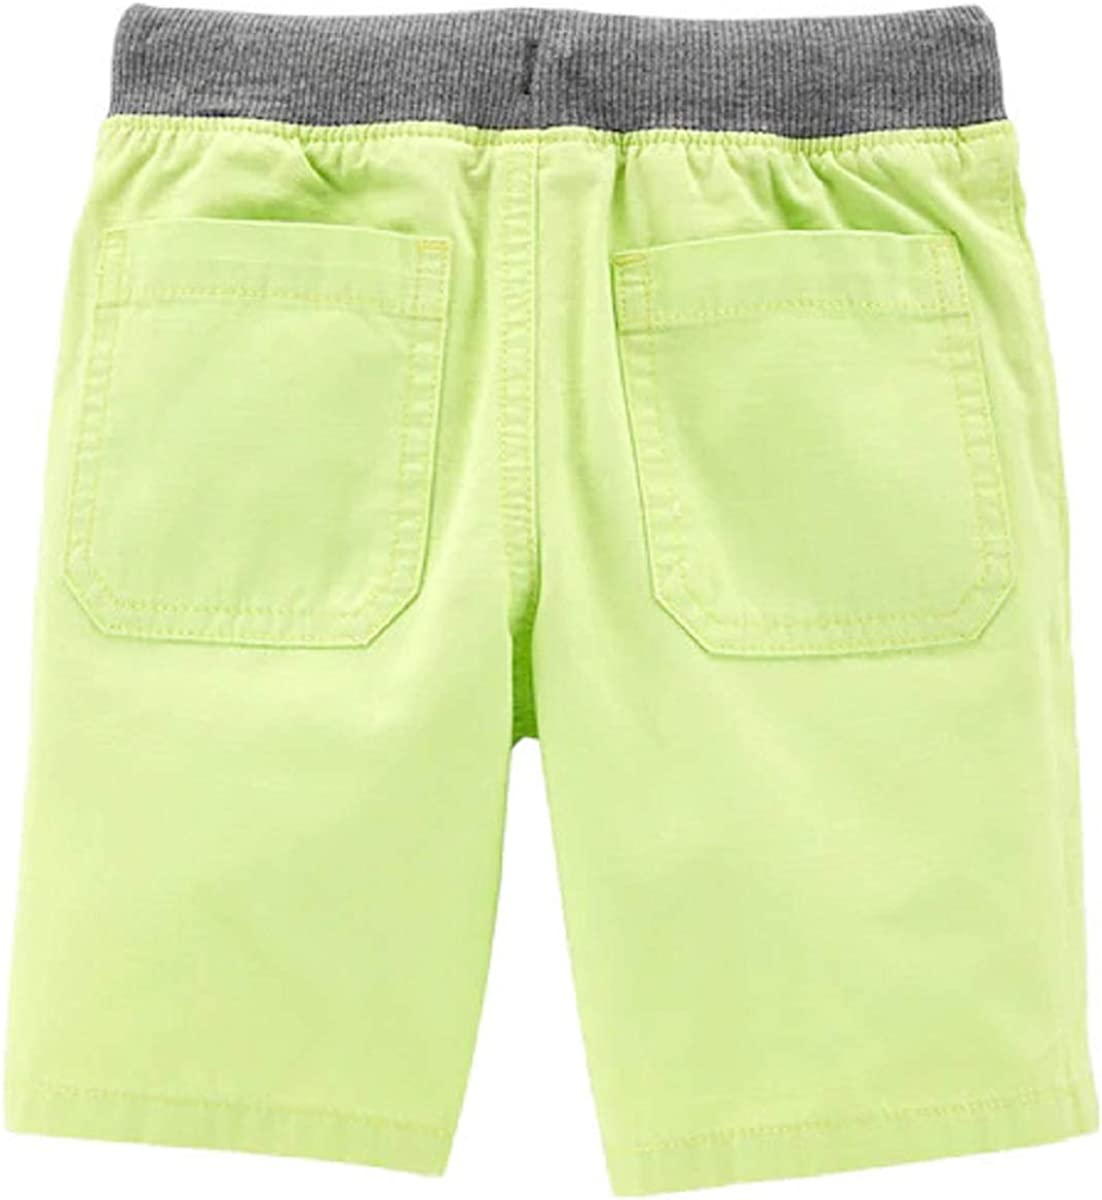 Carters Baby Boys Yellow Cotton Dock Shorts 24m